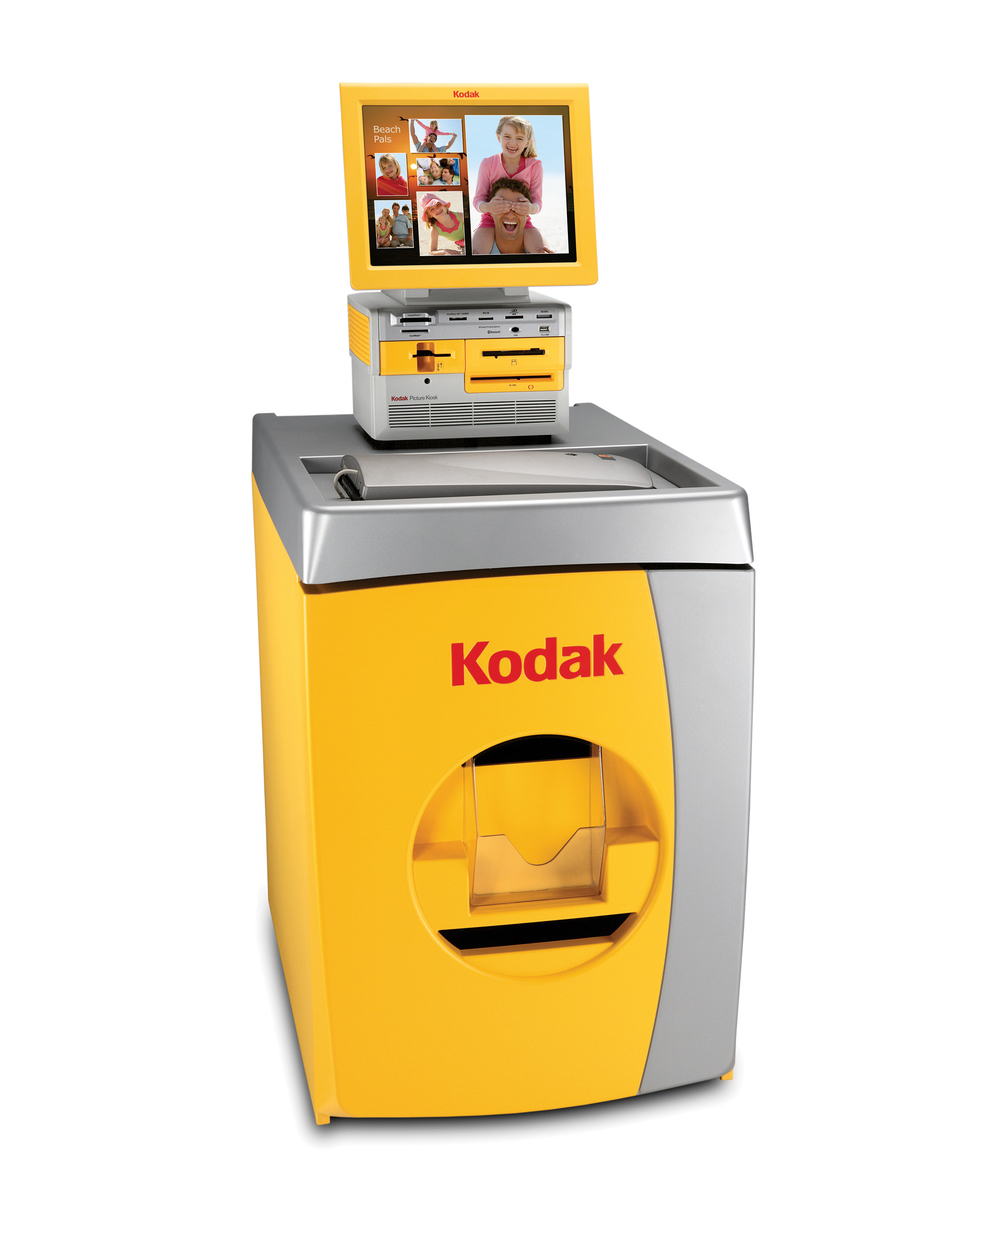 Kodak Photo Kiosk.  These photo kiosks are great to place in convenience stores, drug stores, grocery stores, and many other retail type stores.  They can be an instant way to make additional money for your business.  Small towns with limited options to get photos printed benefit greatly when a local business brings one of our Kodak Picture Makers to town.